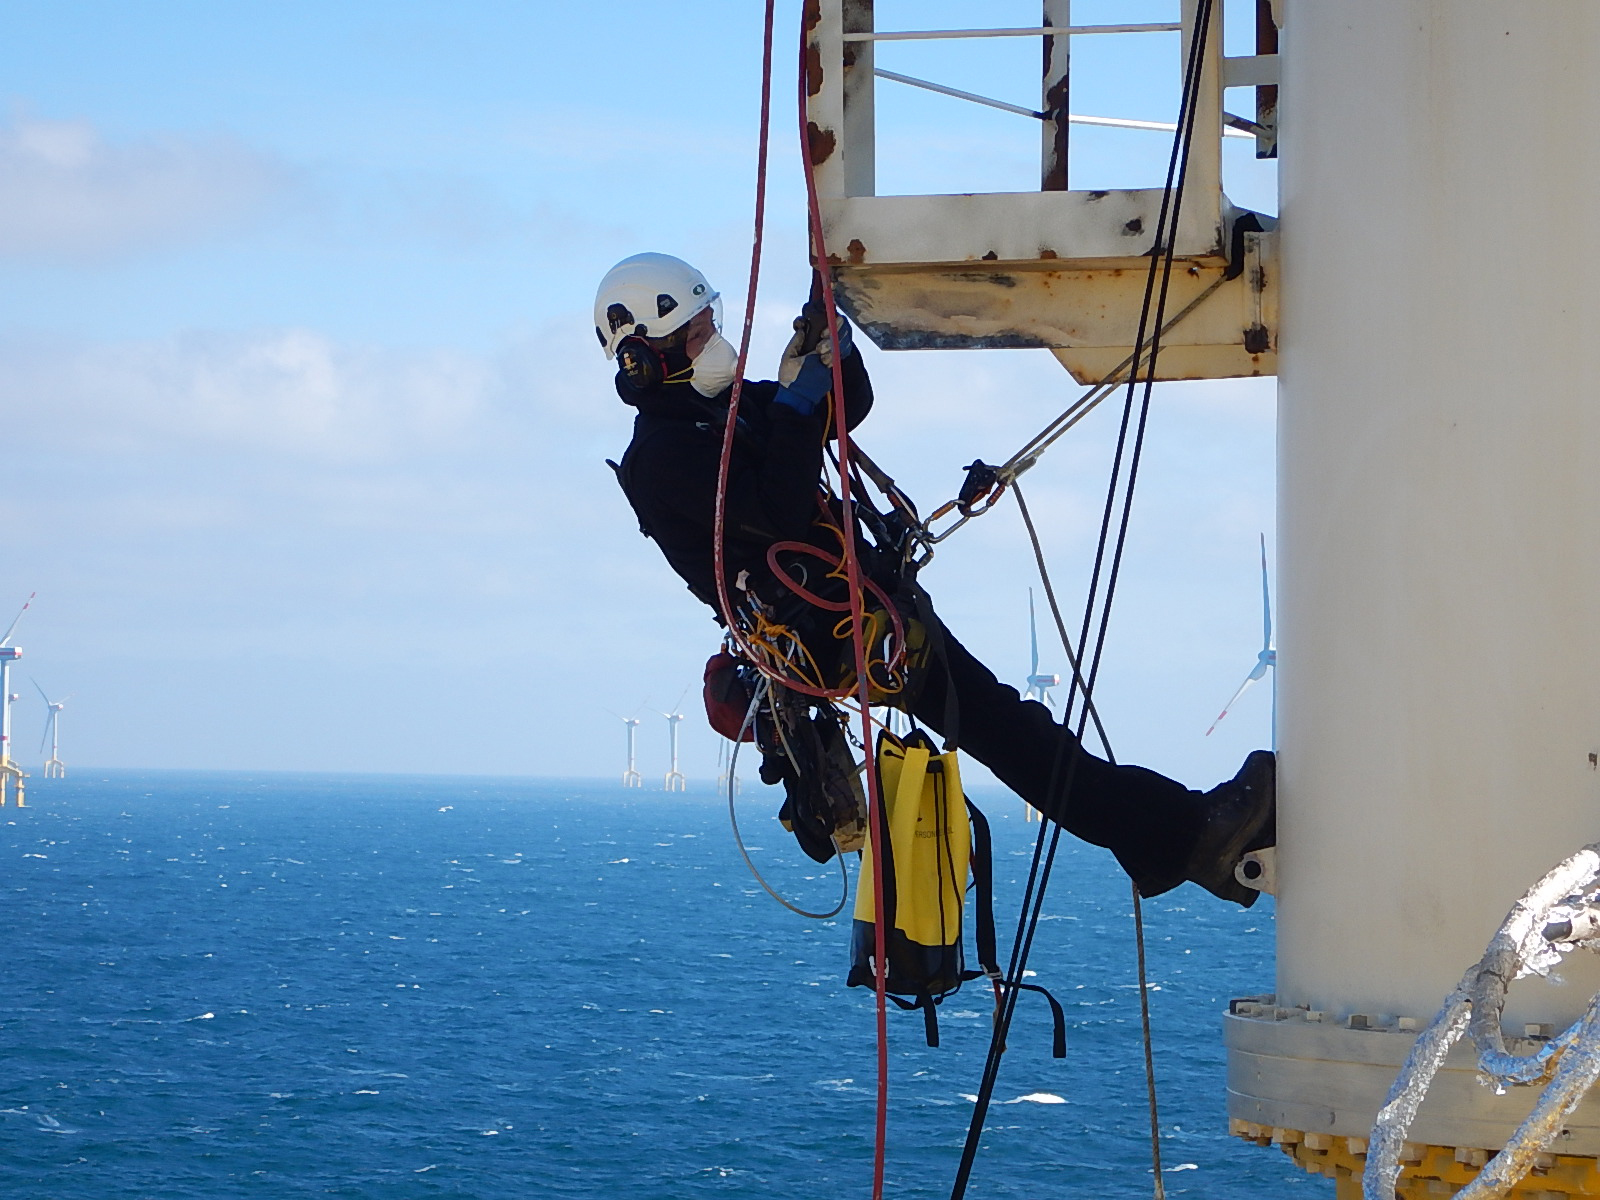 A Few Details About Rope Access